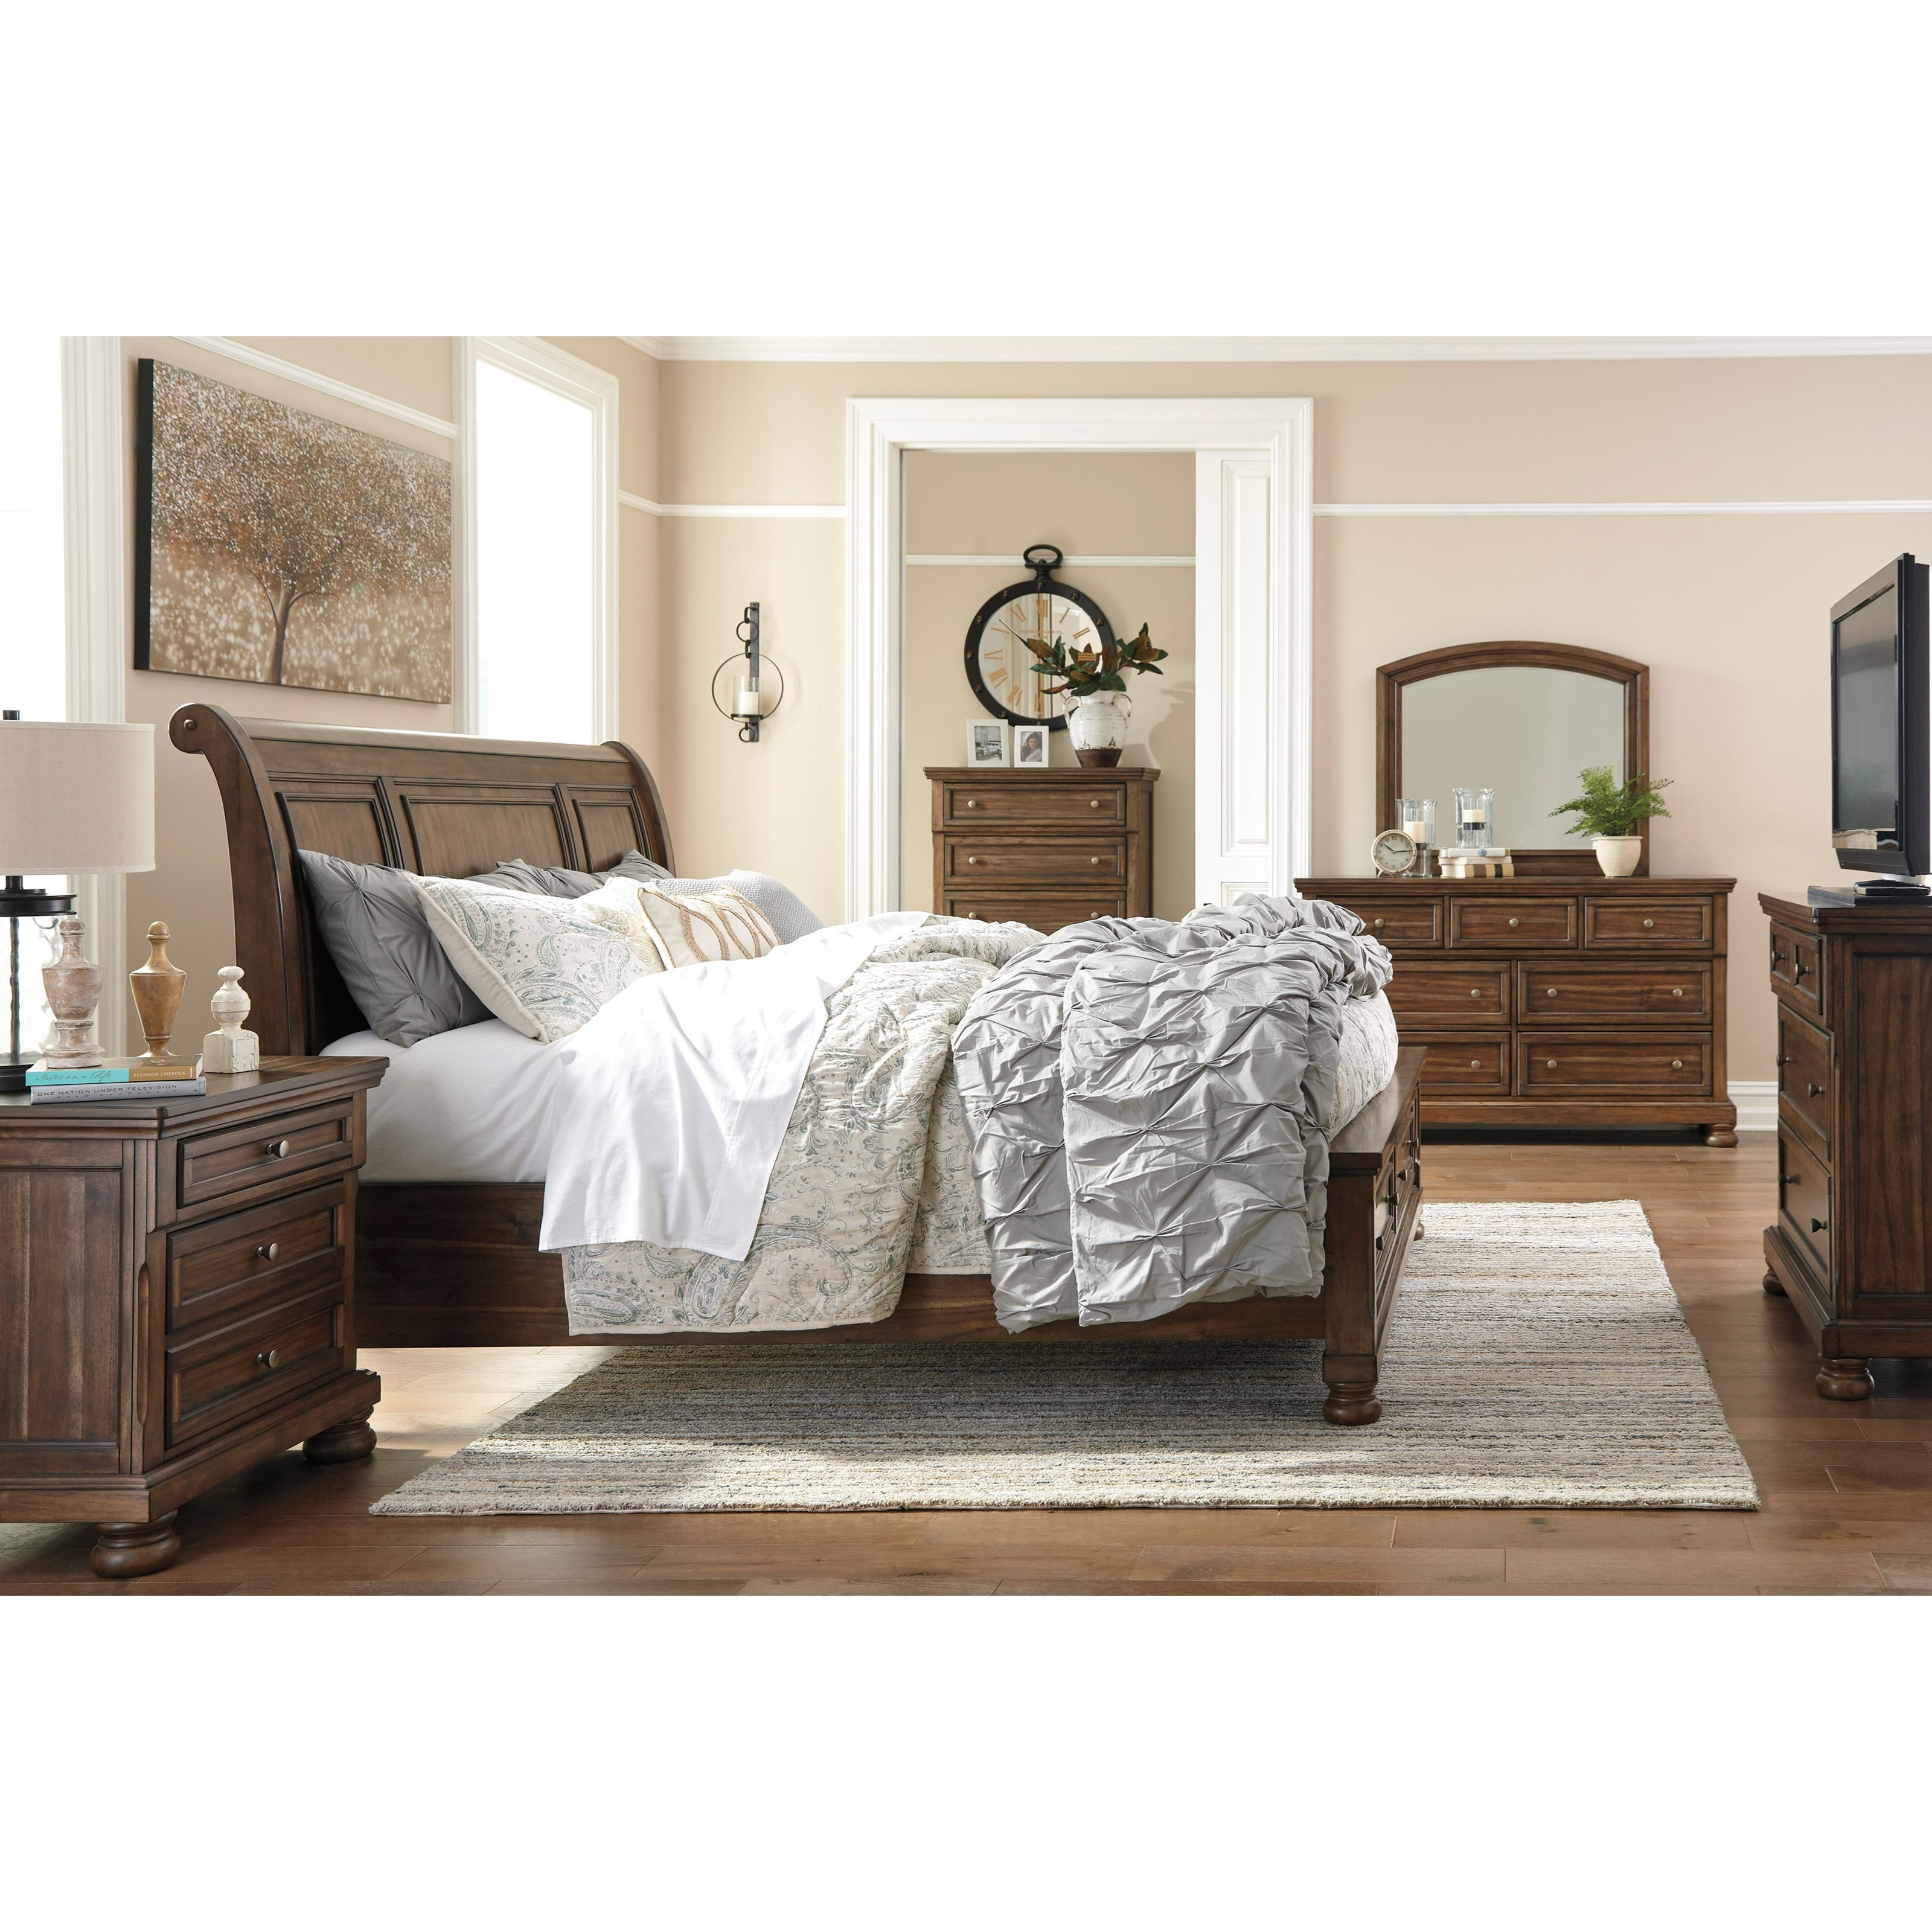 39 Best Images About Bed Room Sets On Pinterest: Signature Design By Ashley Flynnter B719-39 Media Chest